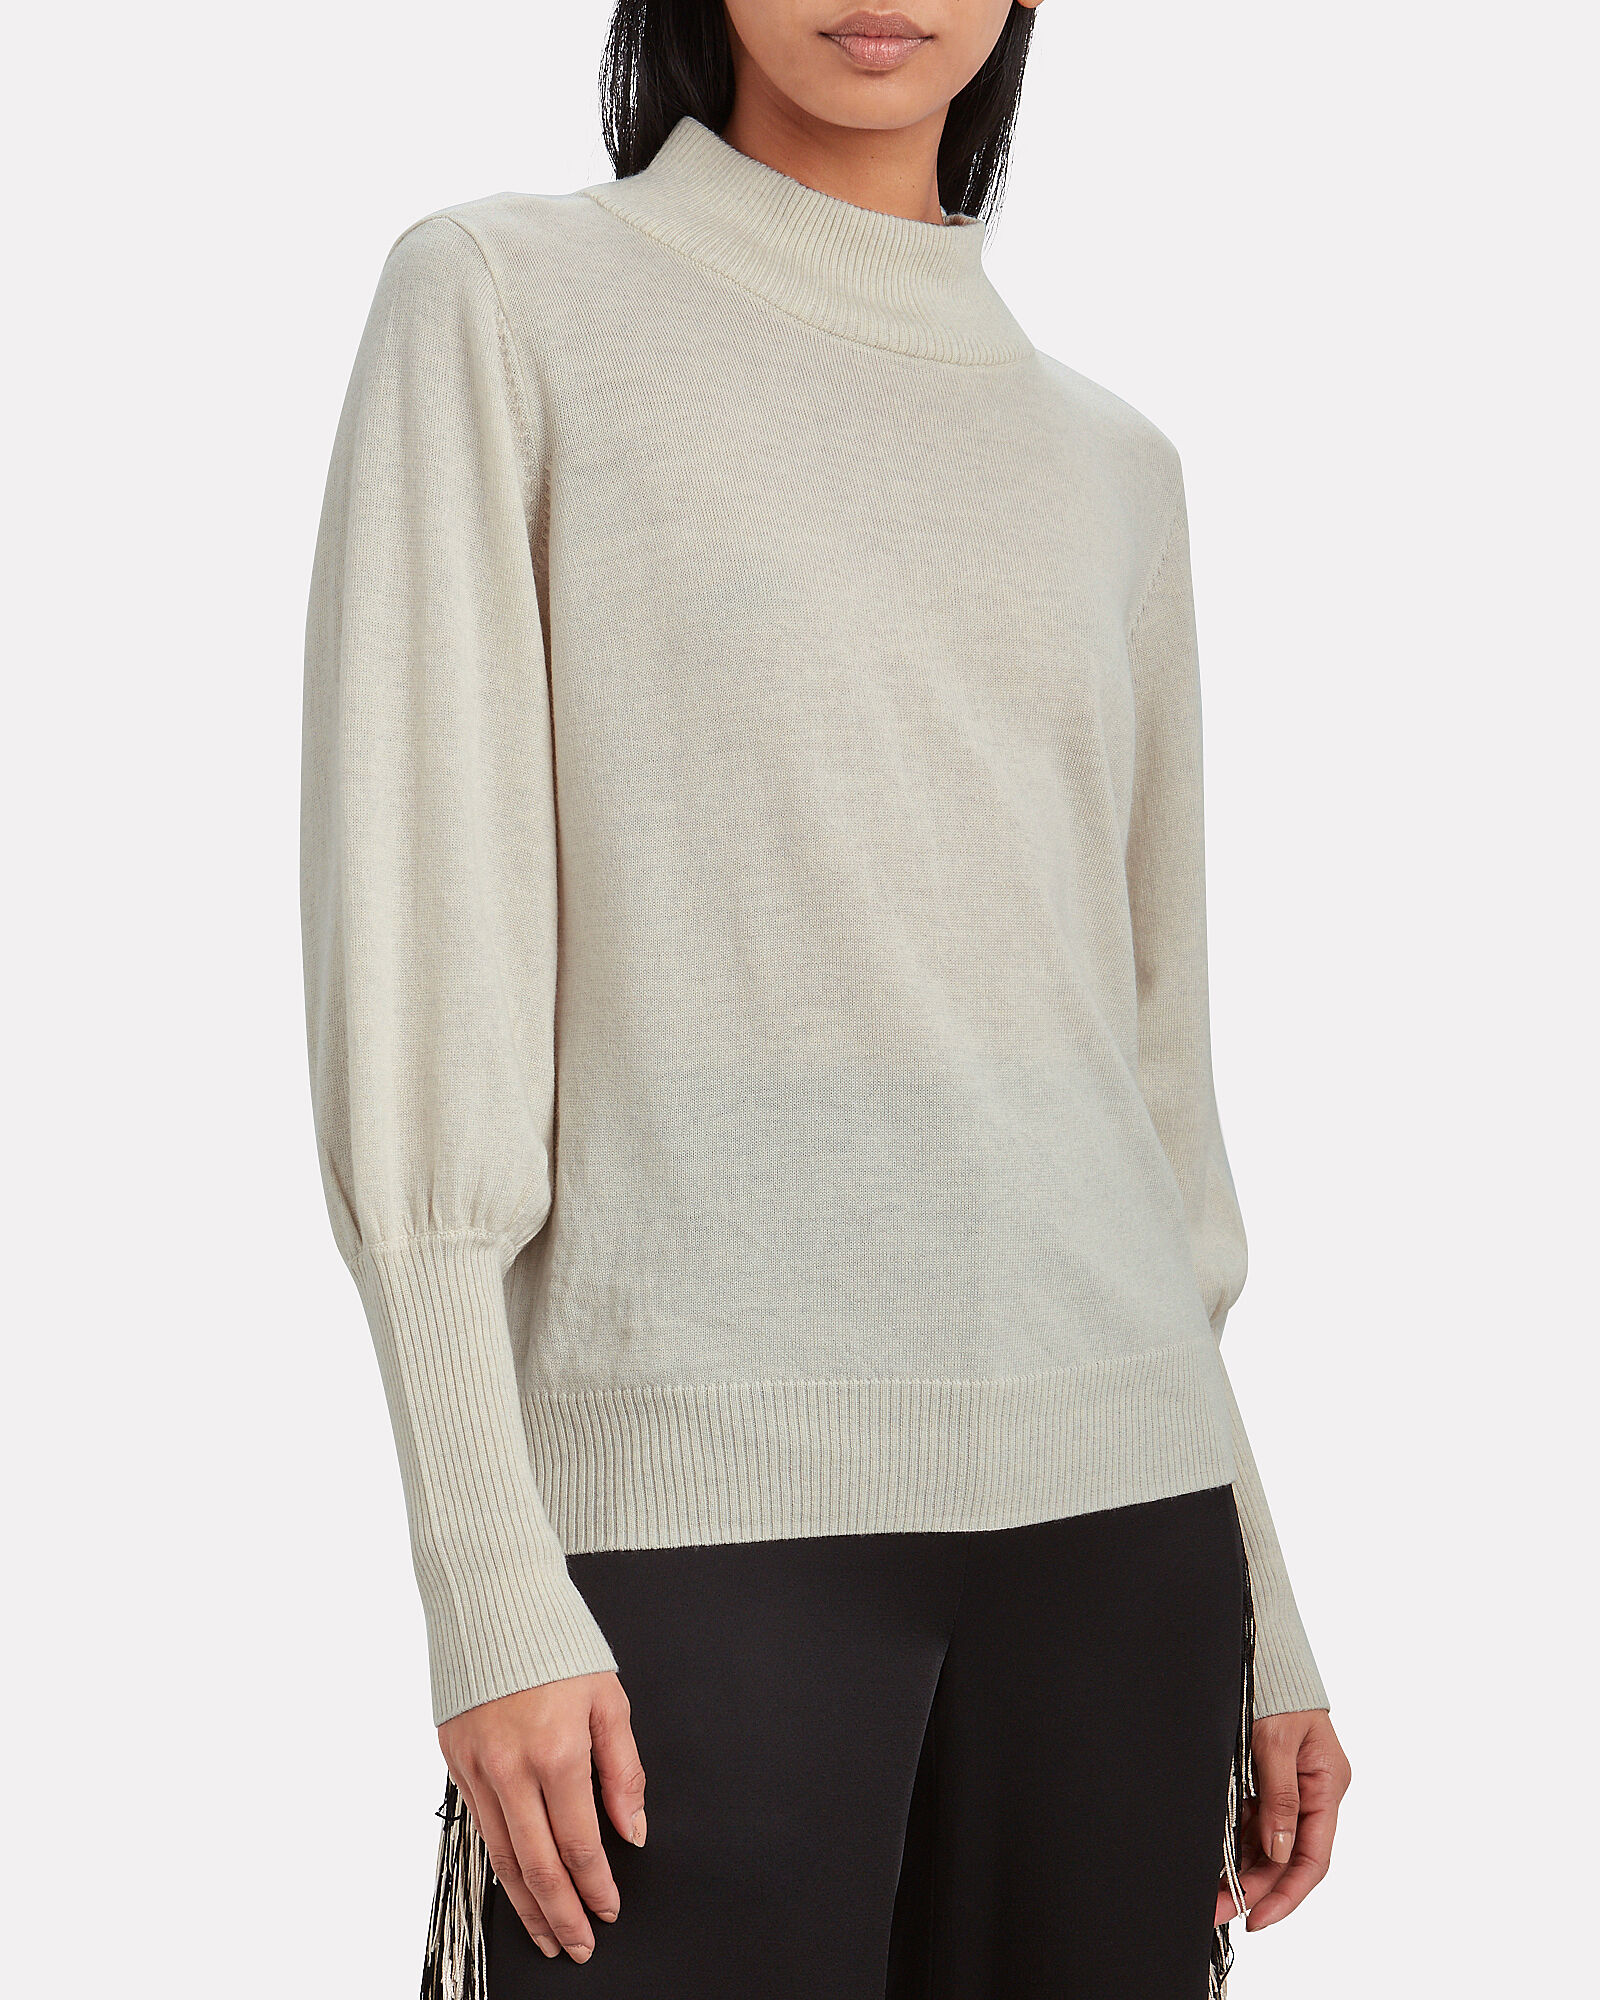 Rian Wool Mock Neck Sweater, IVORY, hi-res